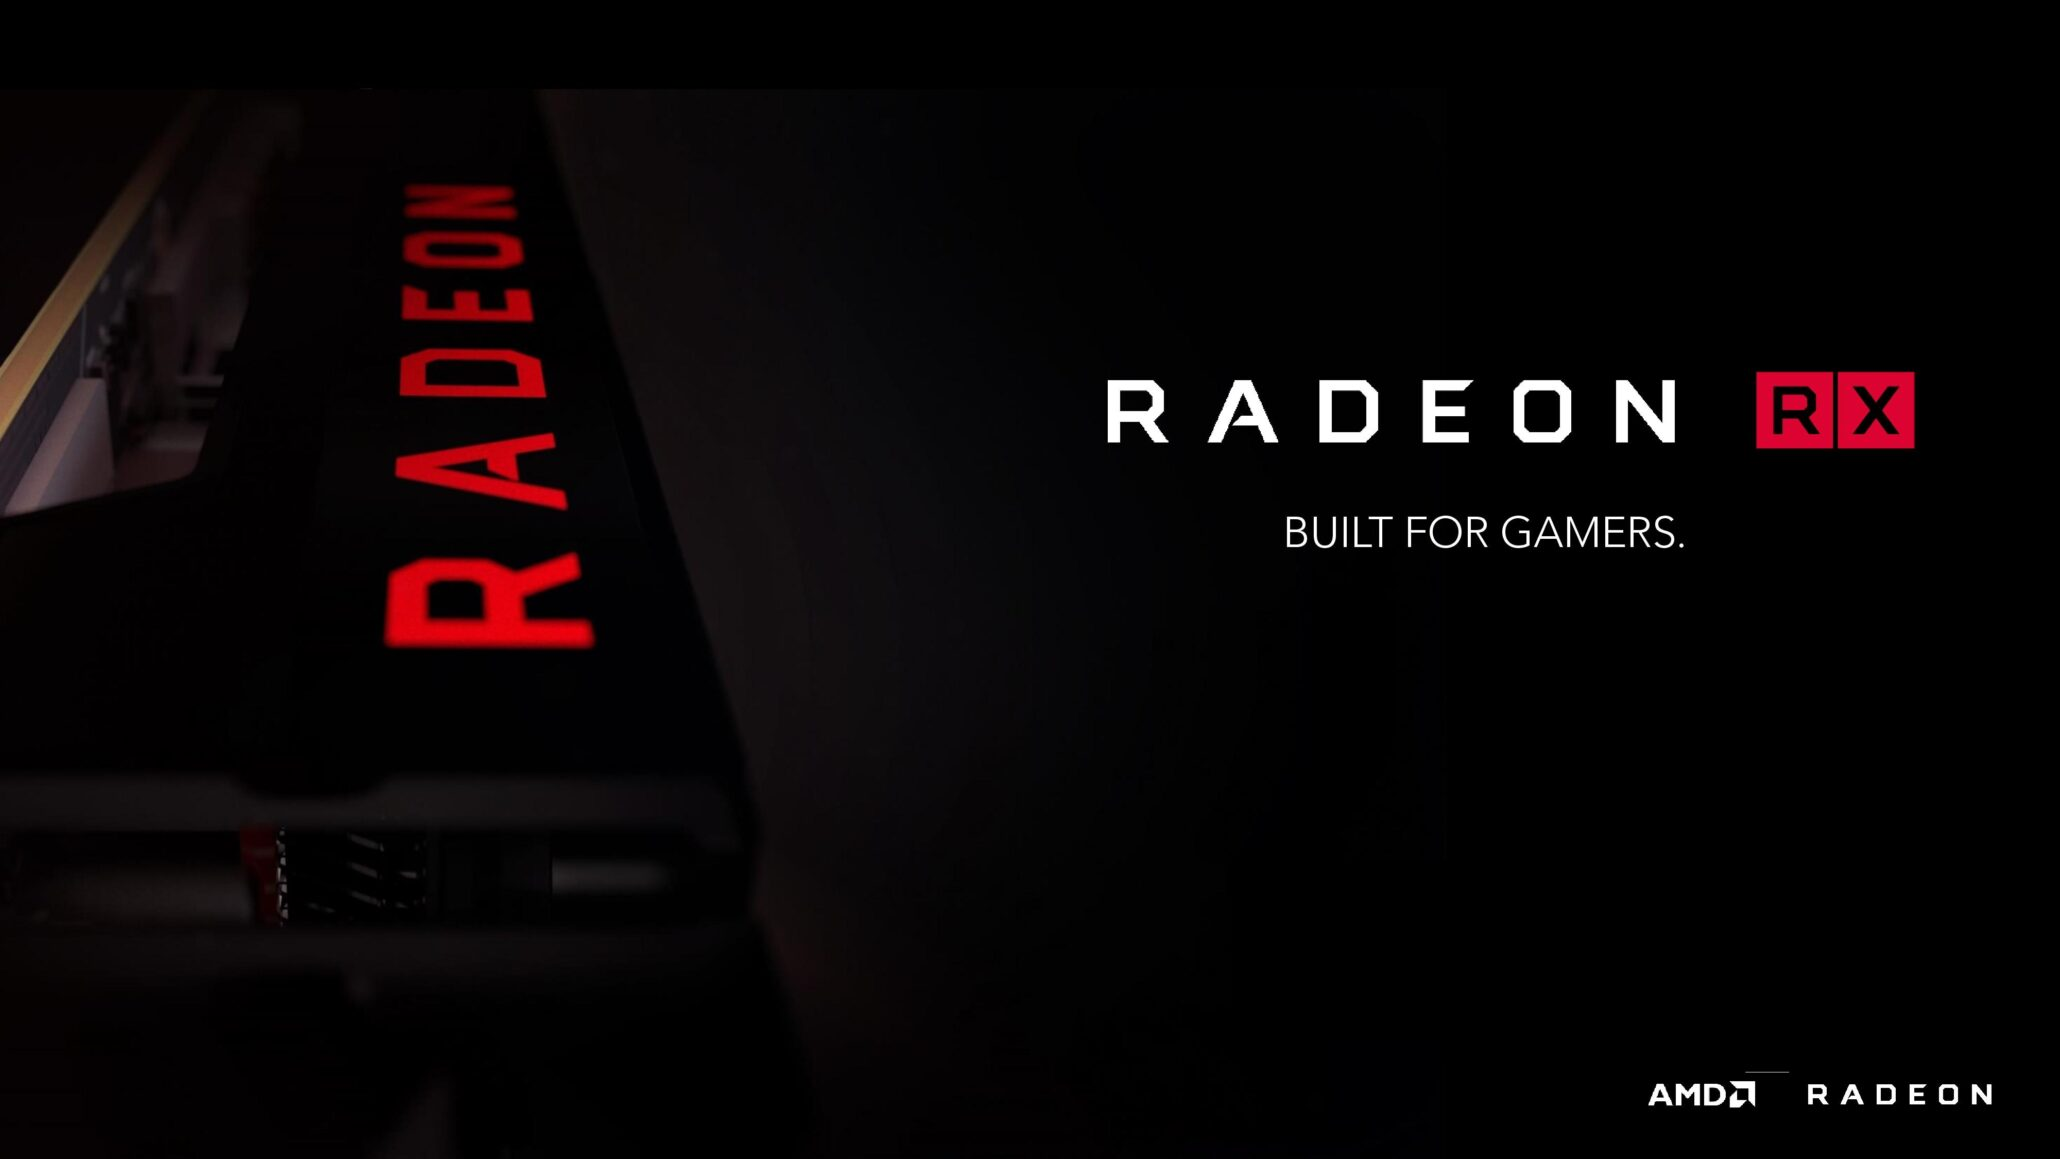 AMD Radeon RX 590 Custom Models Pictured and Fully Detailed